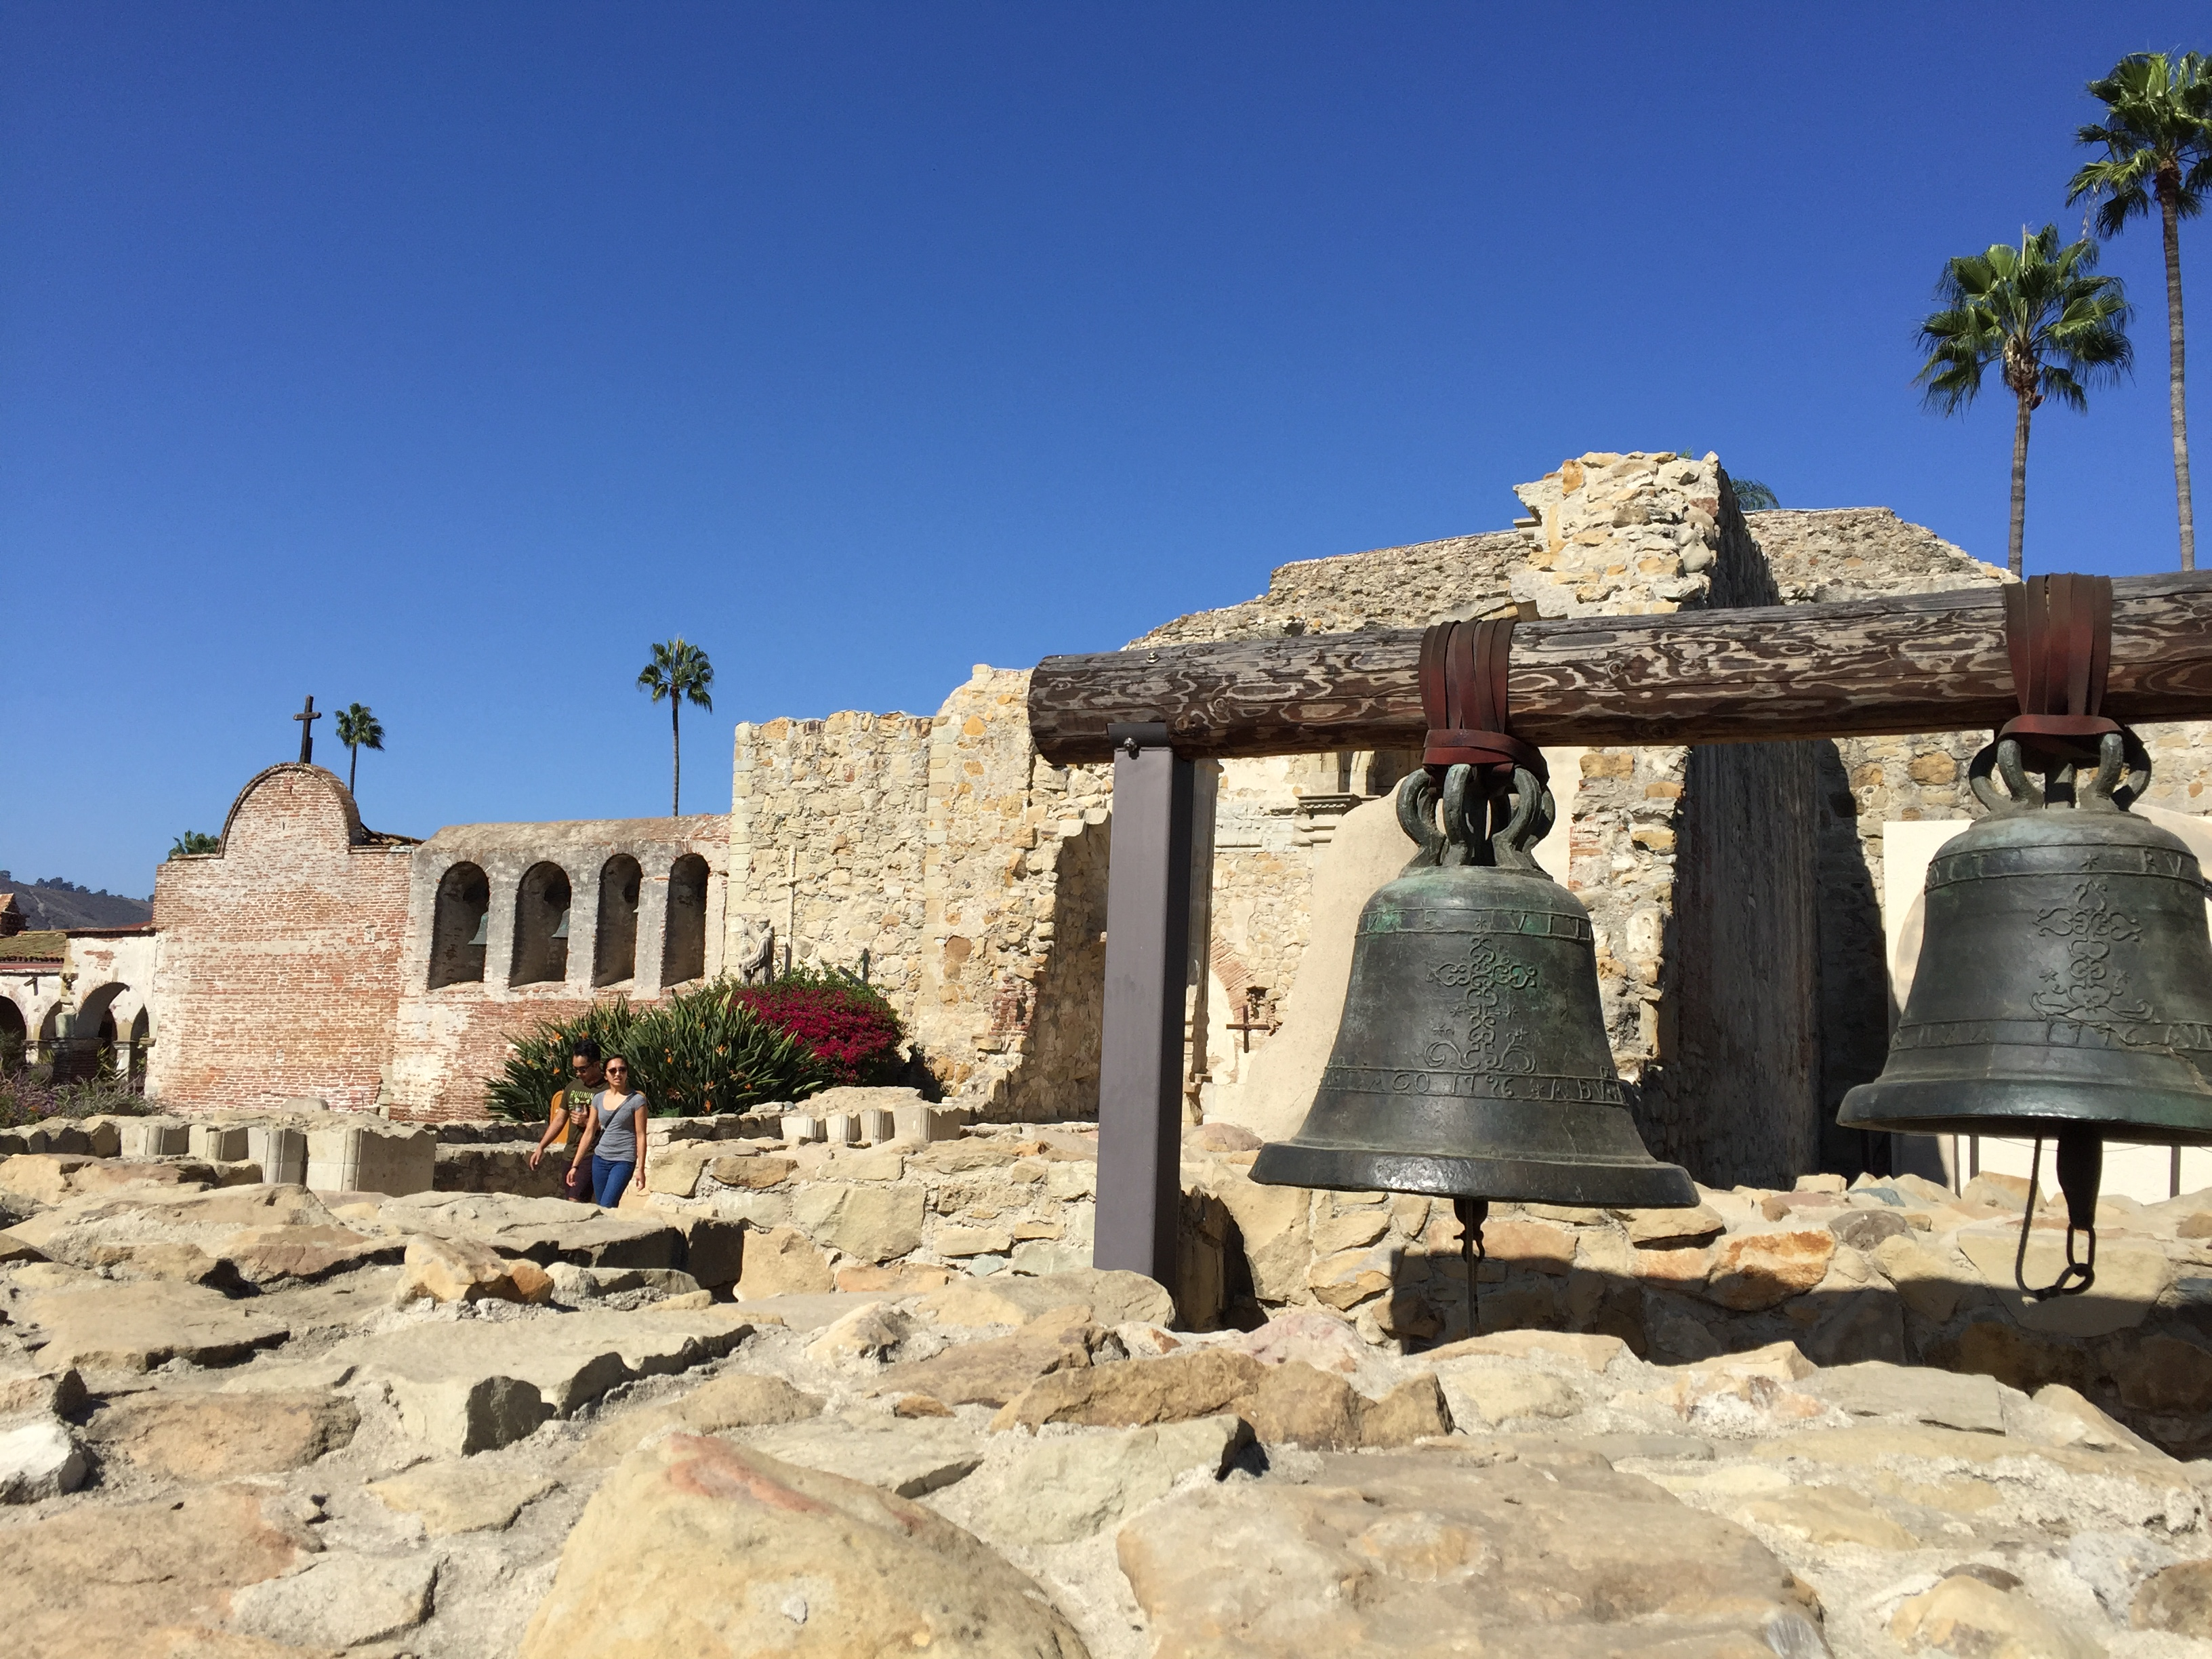 Mission Bells & Church Ruins 10.28.17